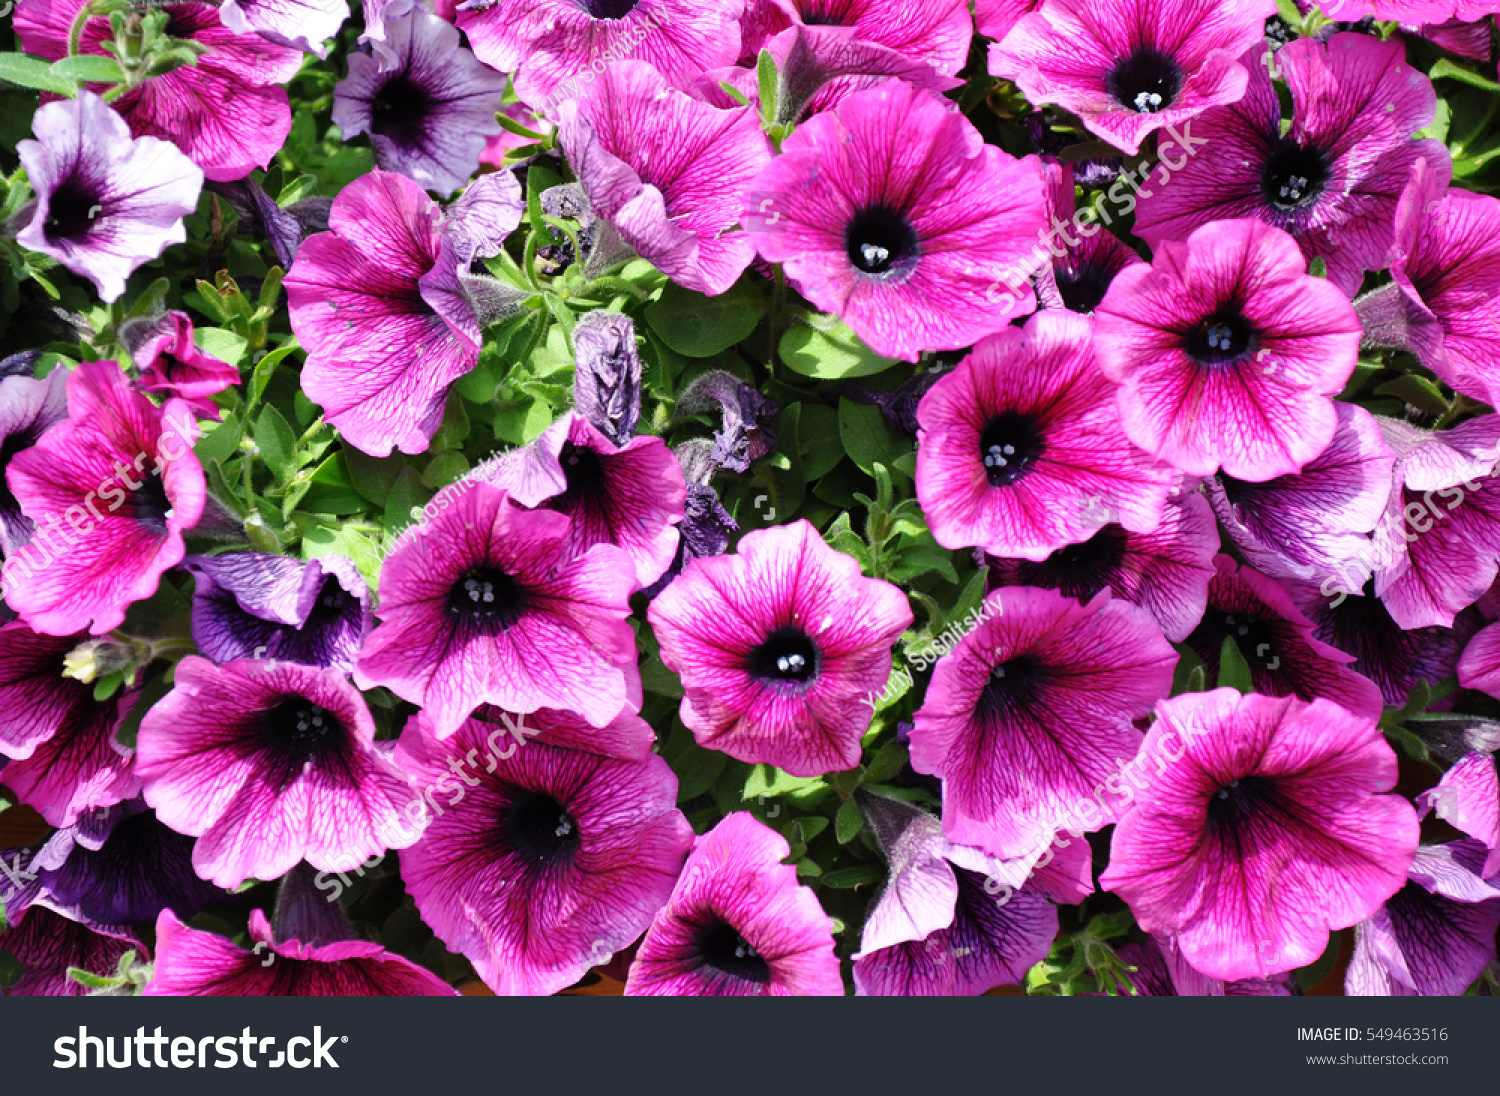 Background Of Colorful Pink Bindweeds Texture Of Pink Flowers And